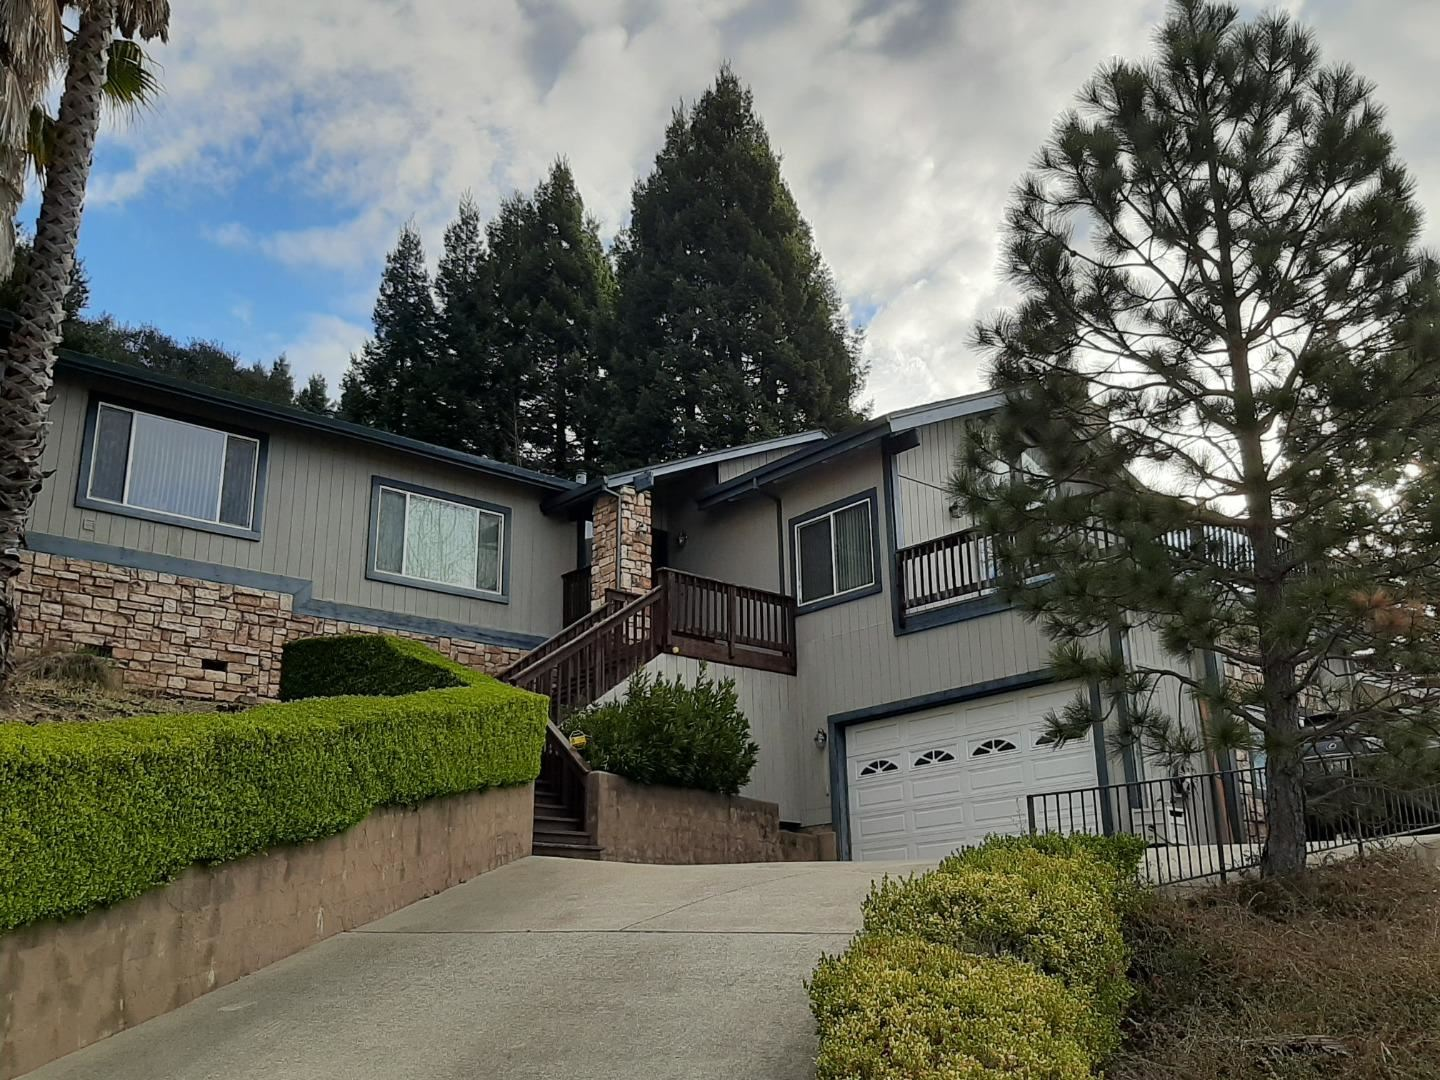 110 Lucia LN, Scotts Valley, CA 95066 - #: ML81798484